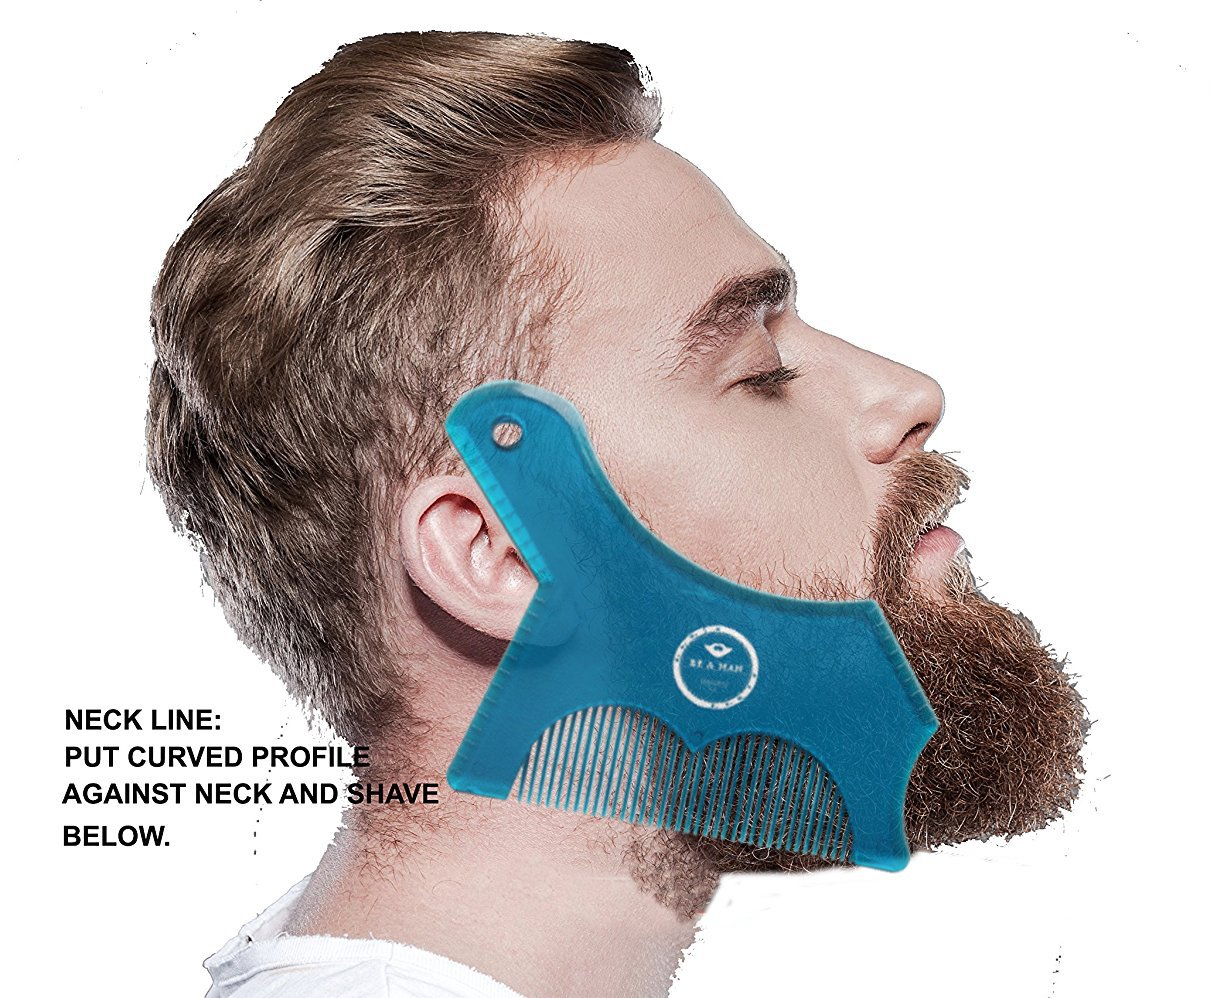 [2018 Upgrade Design] Beard Shaping Stencil With Built-In Comb & Styling Tool for Perfect Lines & Symmetry in Transparent Blue color Premium quality By UNM (Transparent Blue)